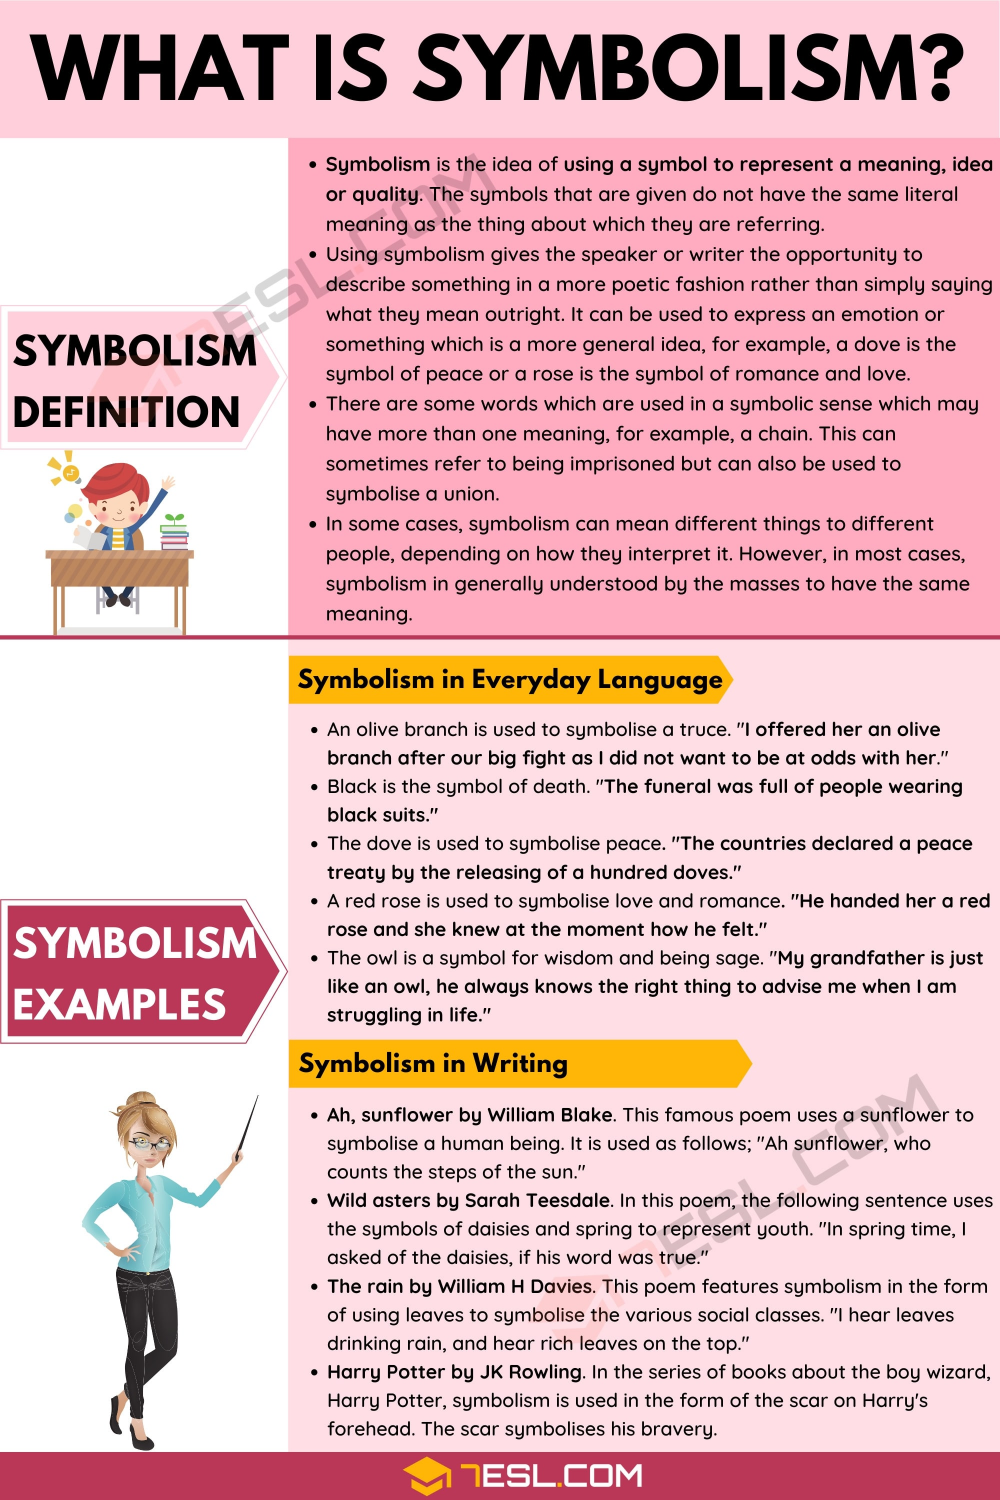 Symbolism Definition And Examples Of Symbolism In Speech Writing 7esl English Writing Skills Teaching Literature Learn English Vocabulary